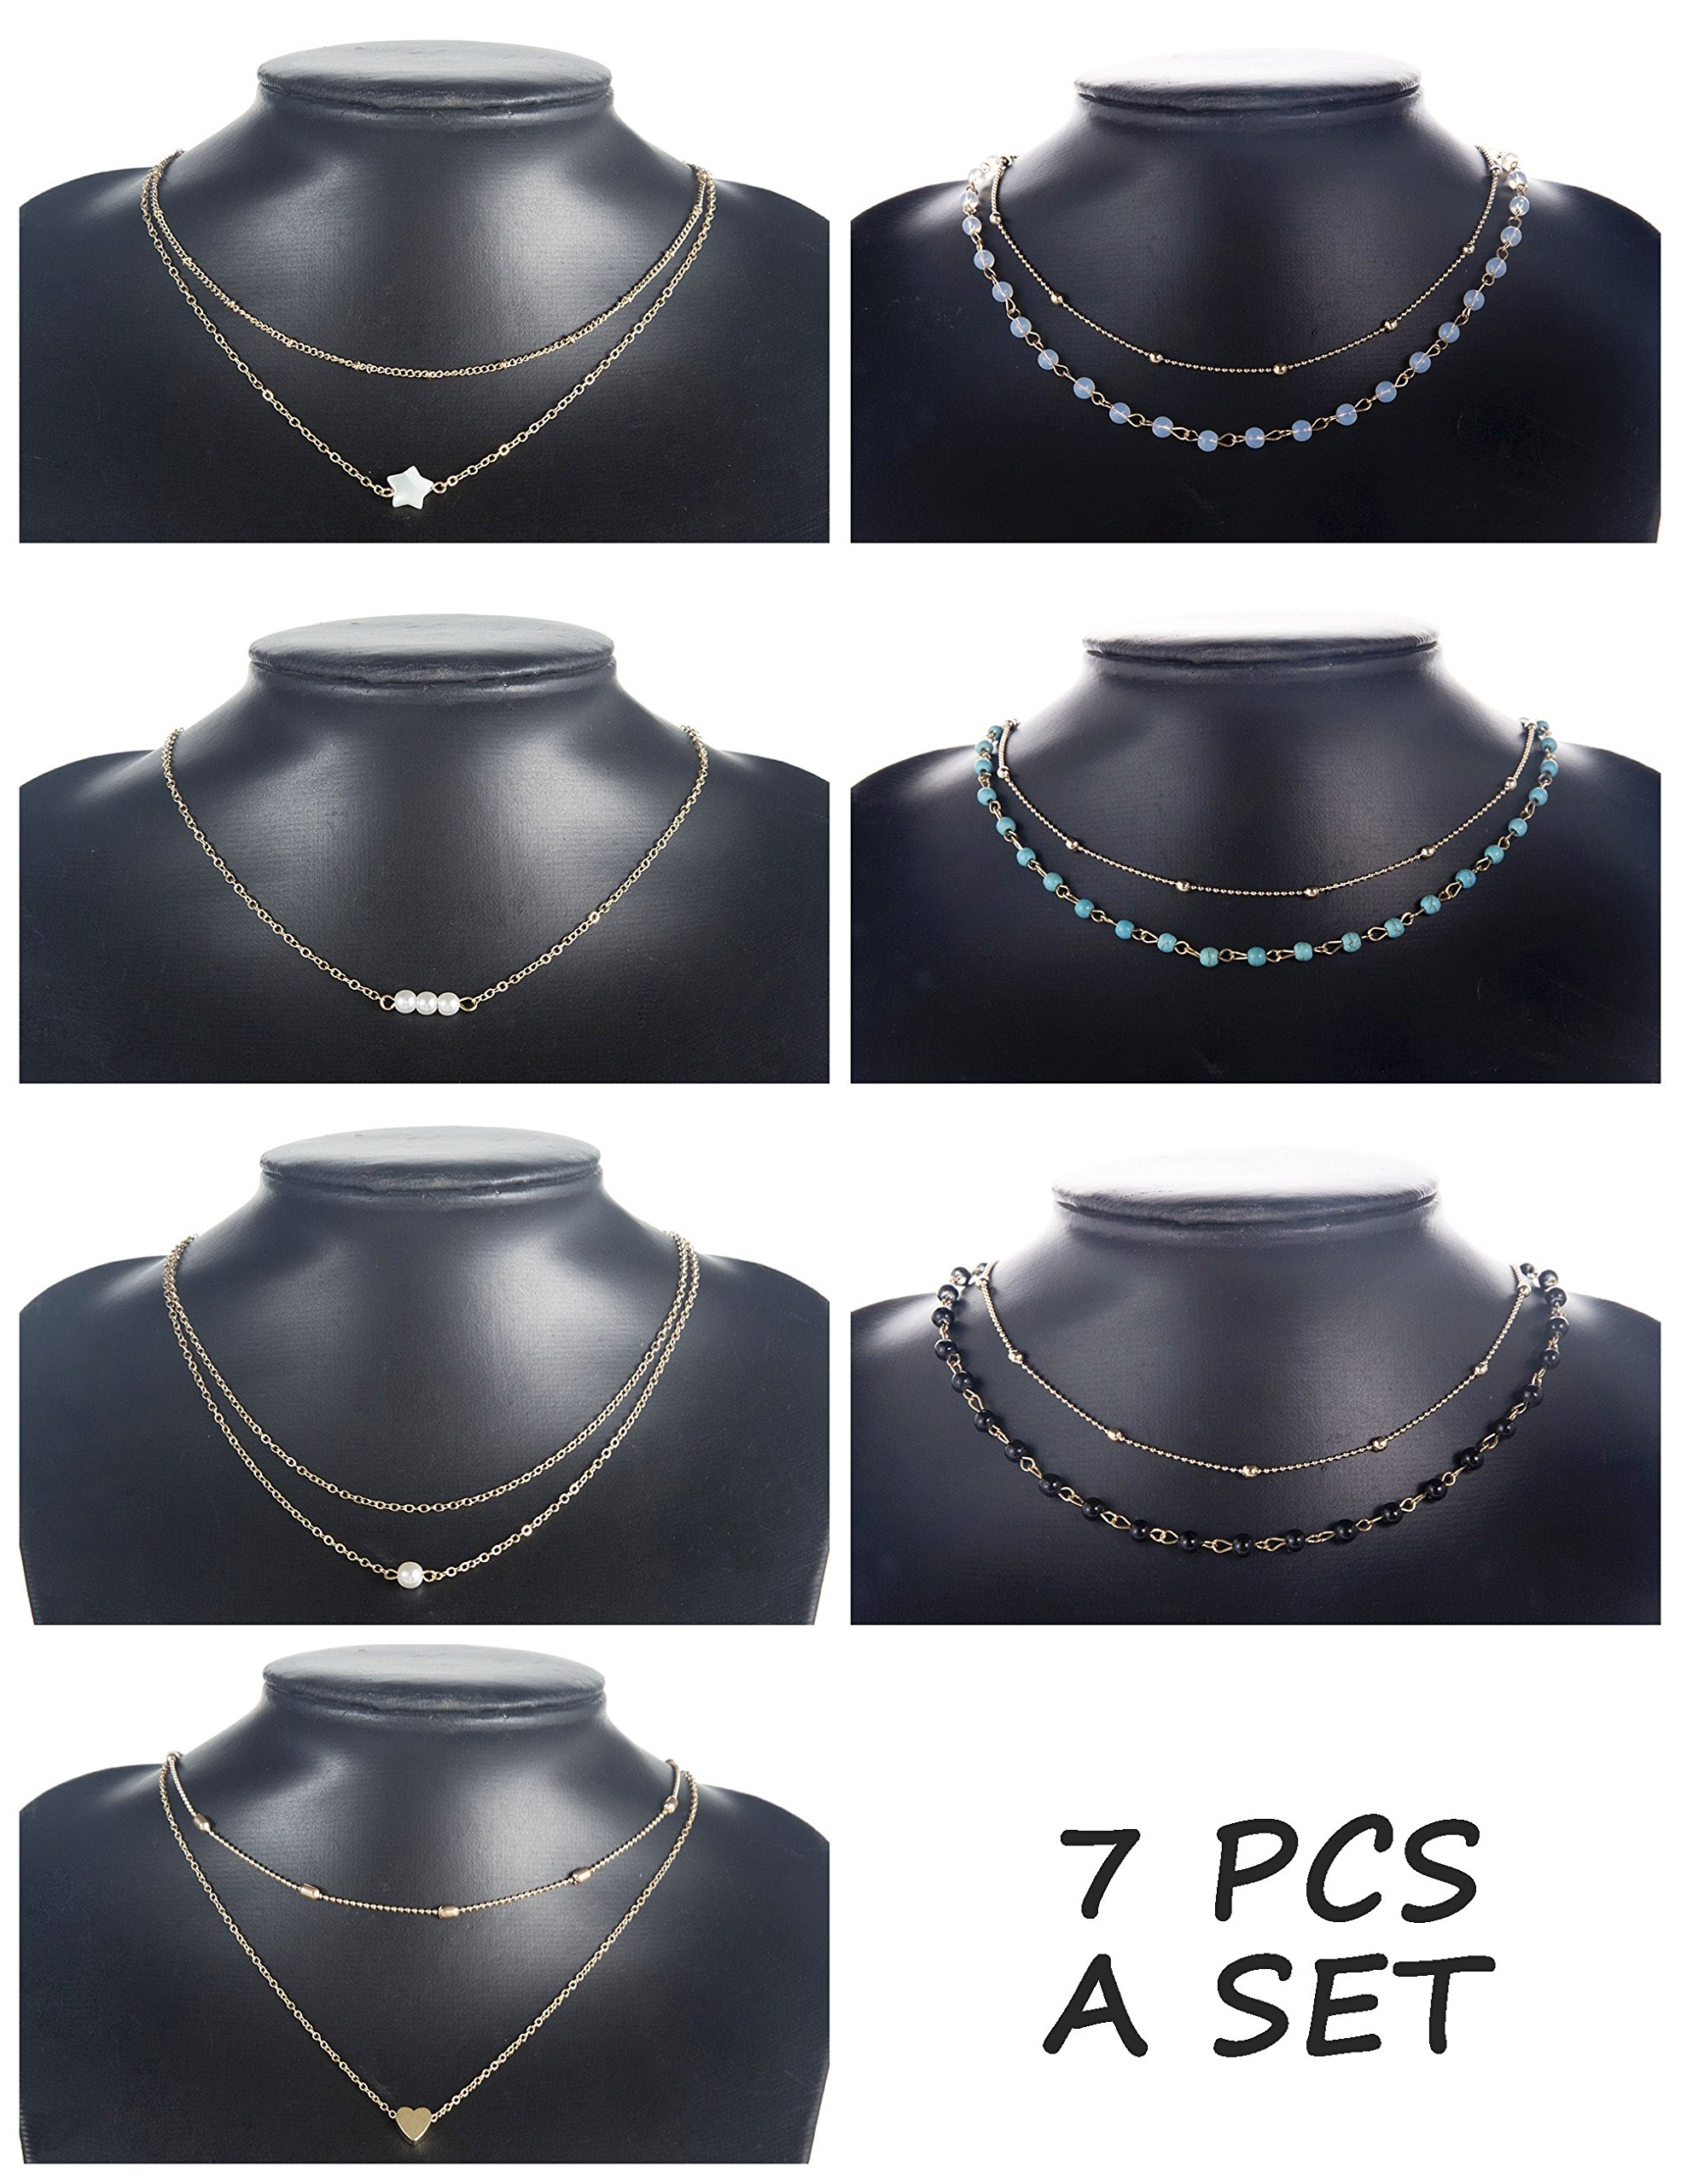 Finrezio 7 PCS Layered Choker Necklace for Women Girls Gold-Plated Star Heart Pearl Chain Necklaces Dainty Jewelry Set